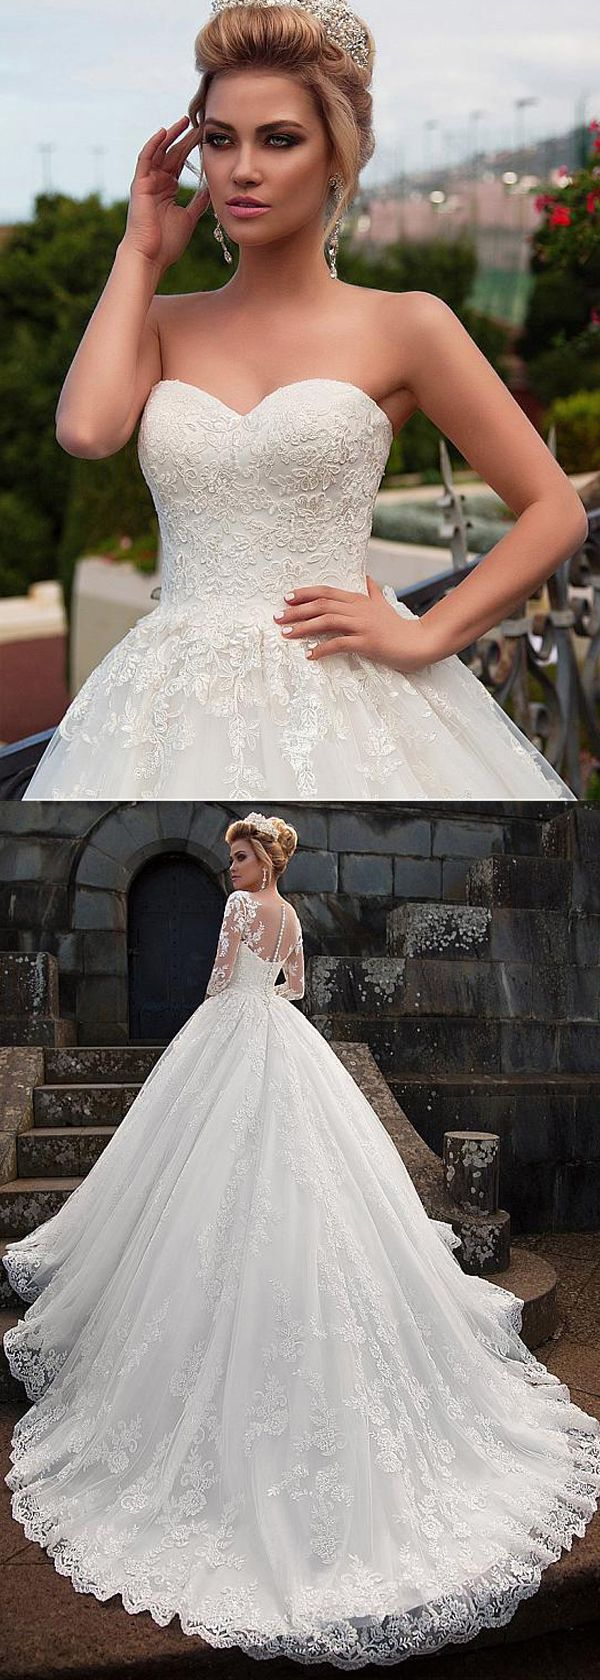 Glamorous Tulle & Organza Scoop Neckline Ball Gown Wedding Dress With Lace Appliques & Detachable Jacket